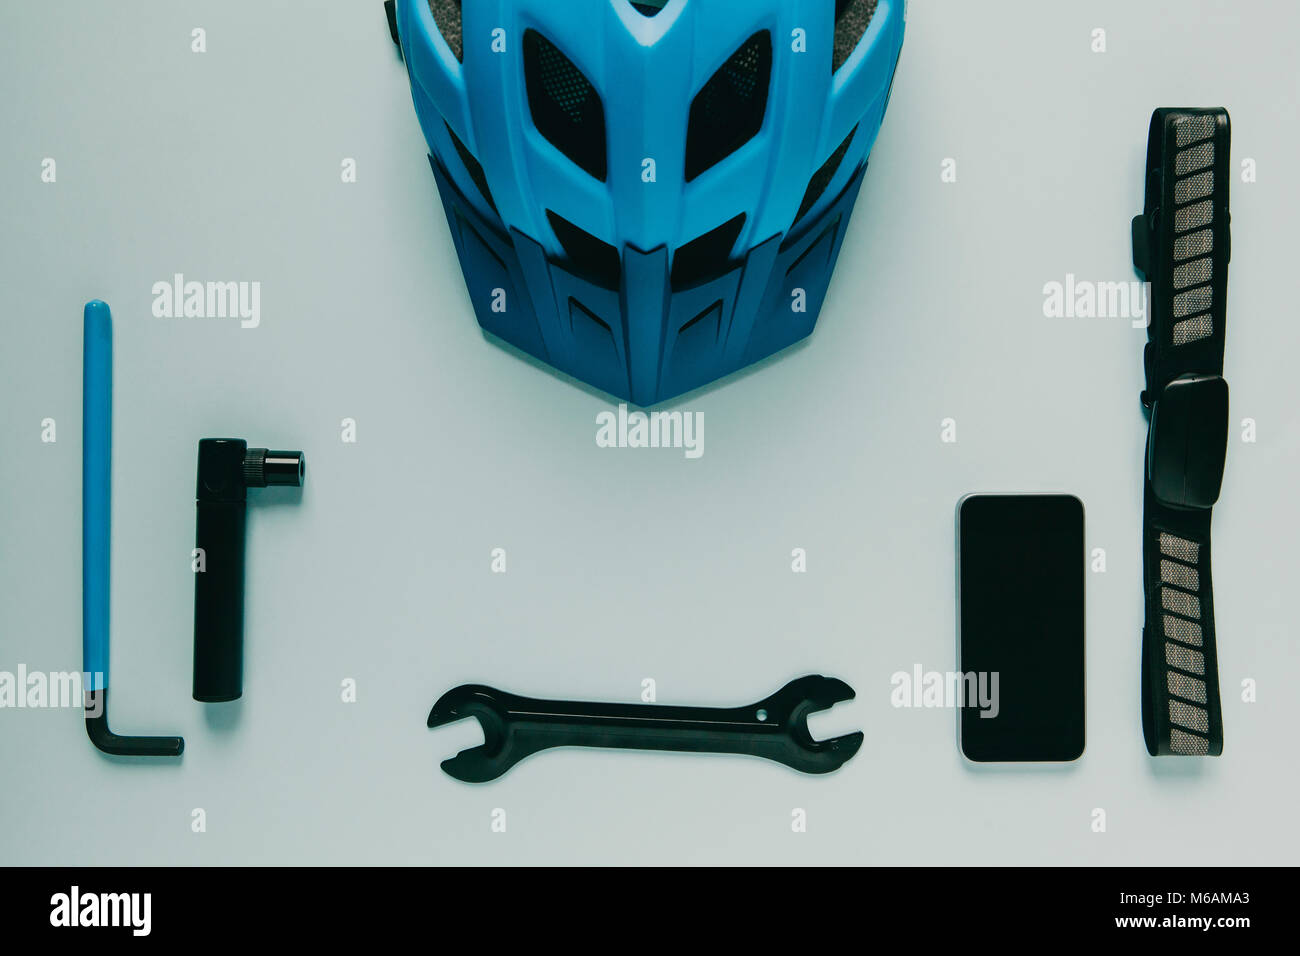 Cycling equipment and mobile phone on blue background. - Stock Image